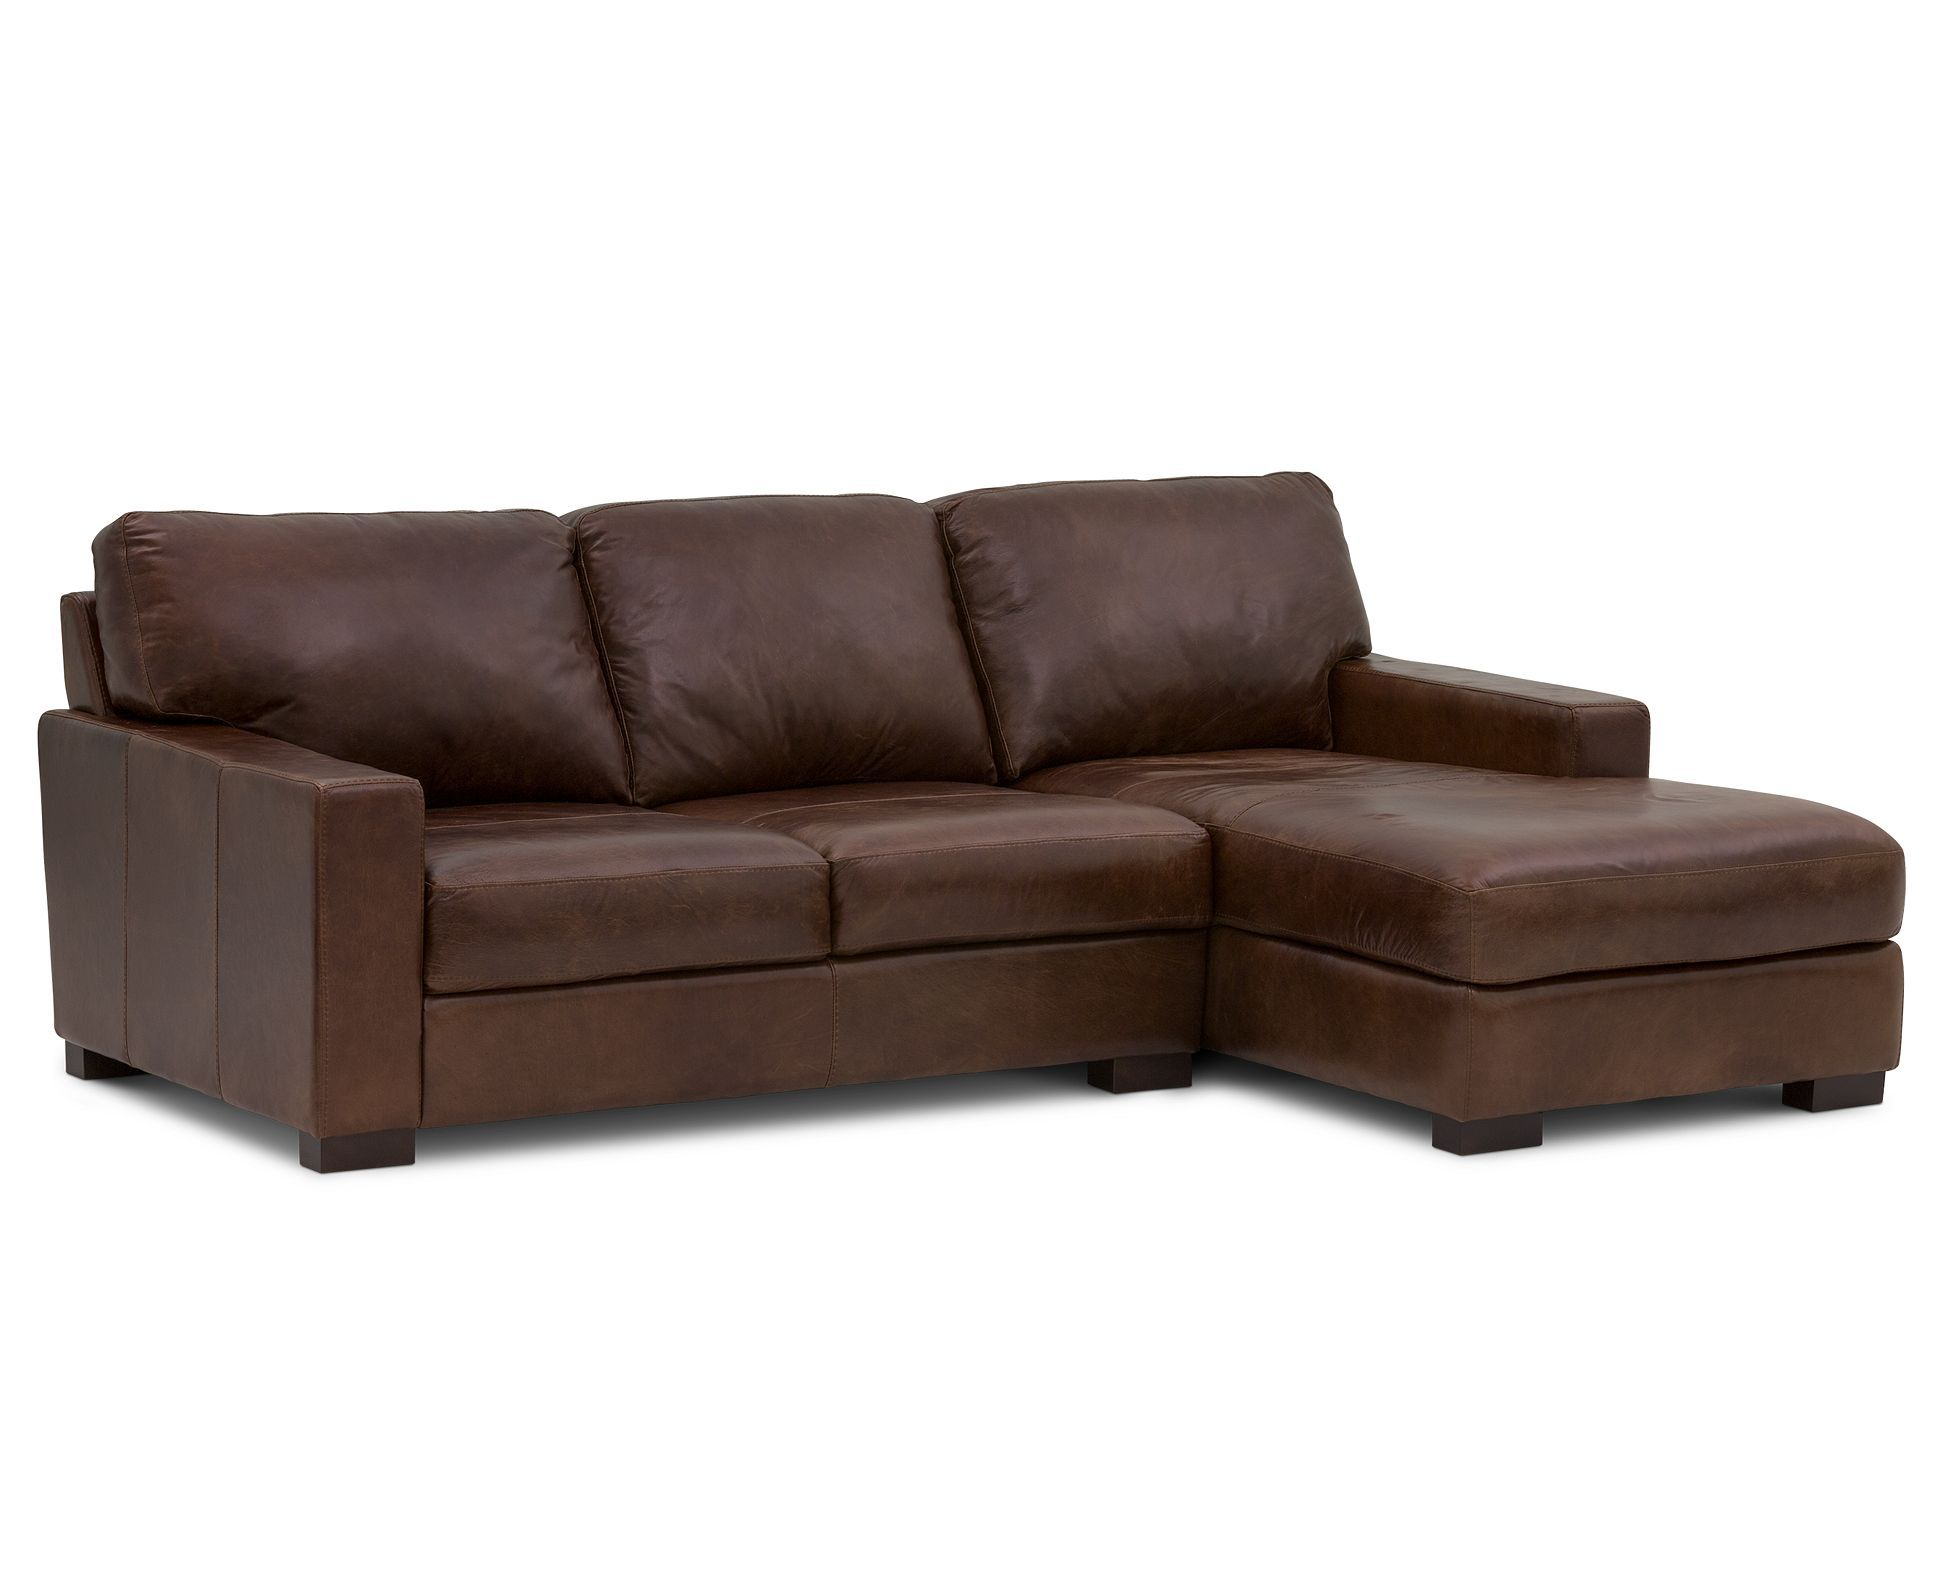 Durango 2 Pc Loveseat Sectional Furniture Row